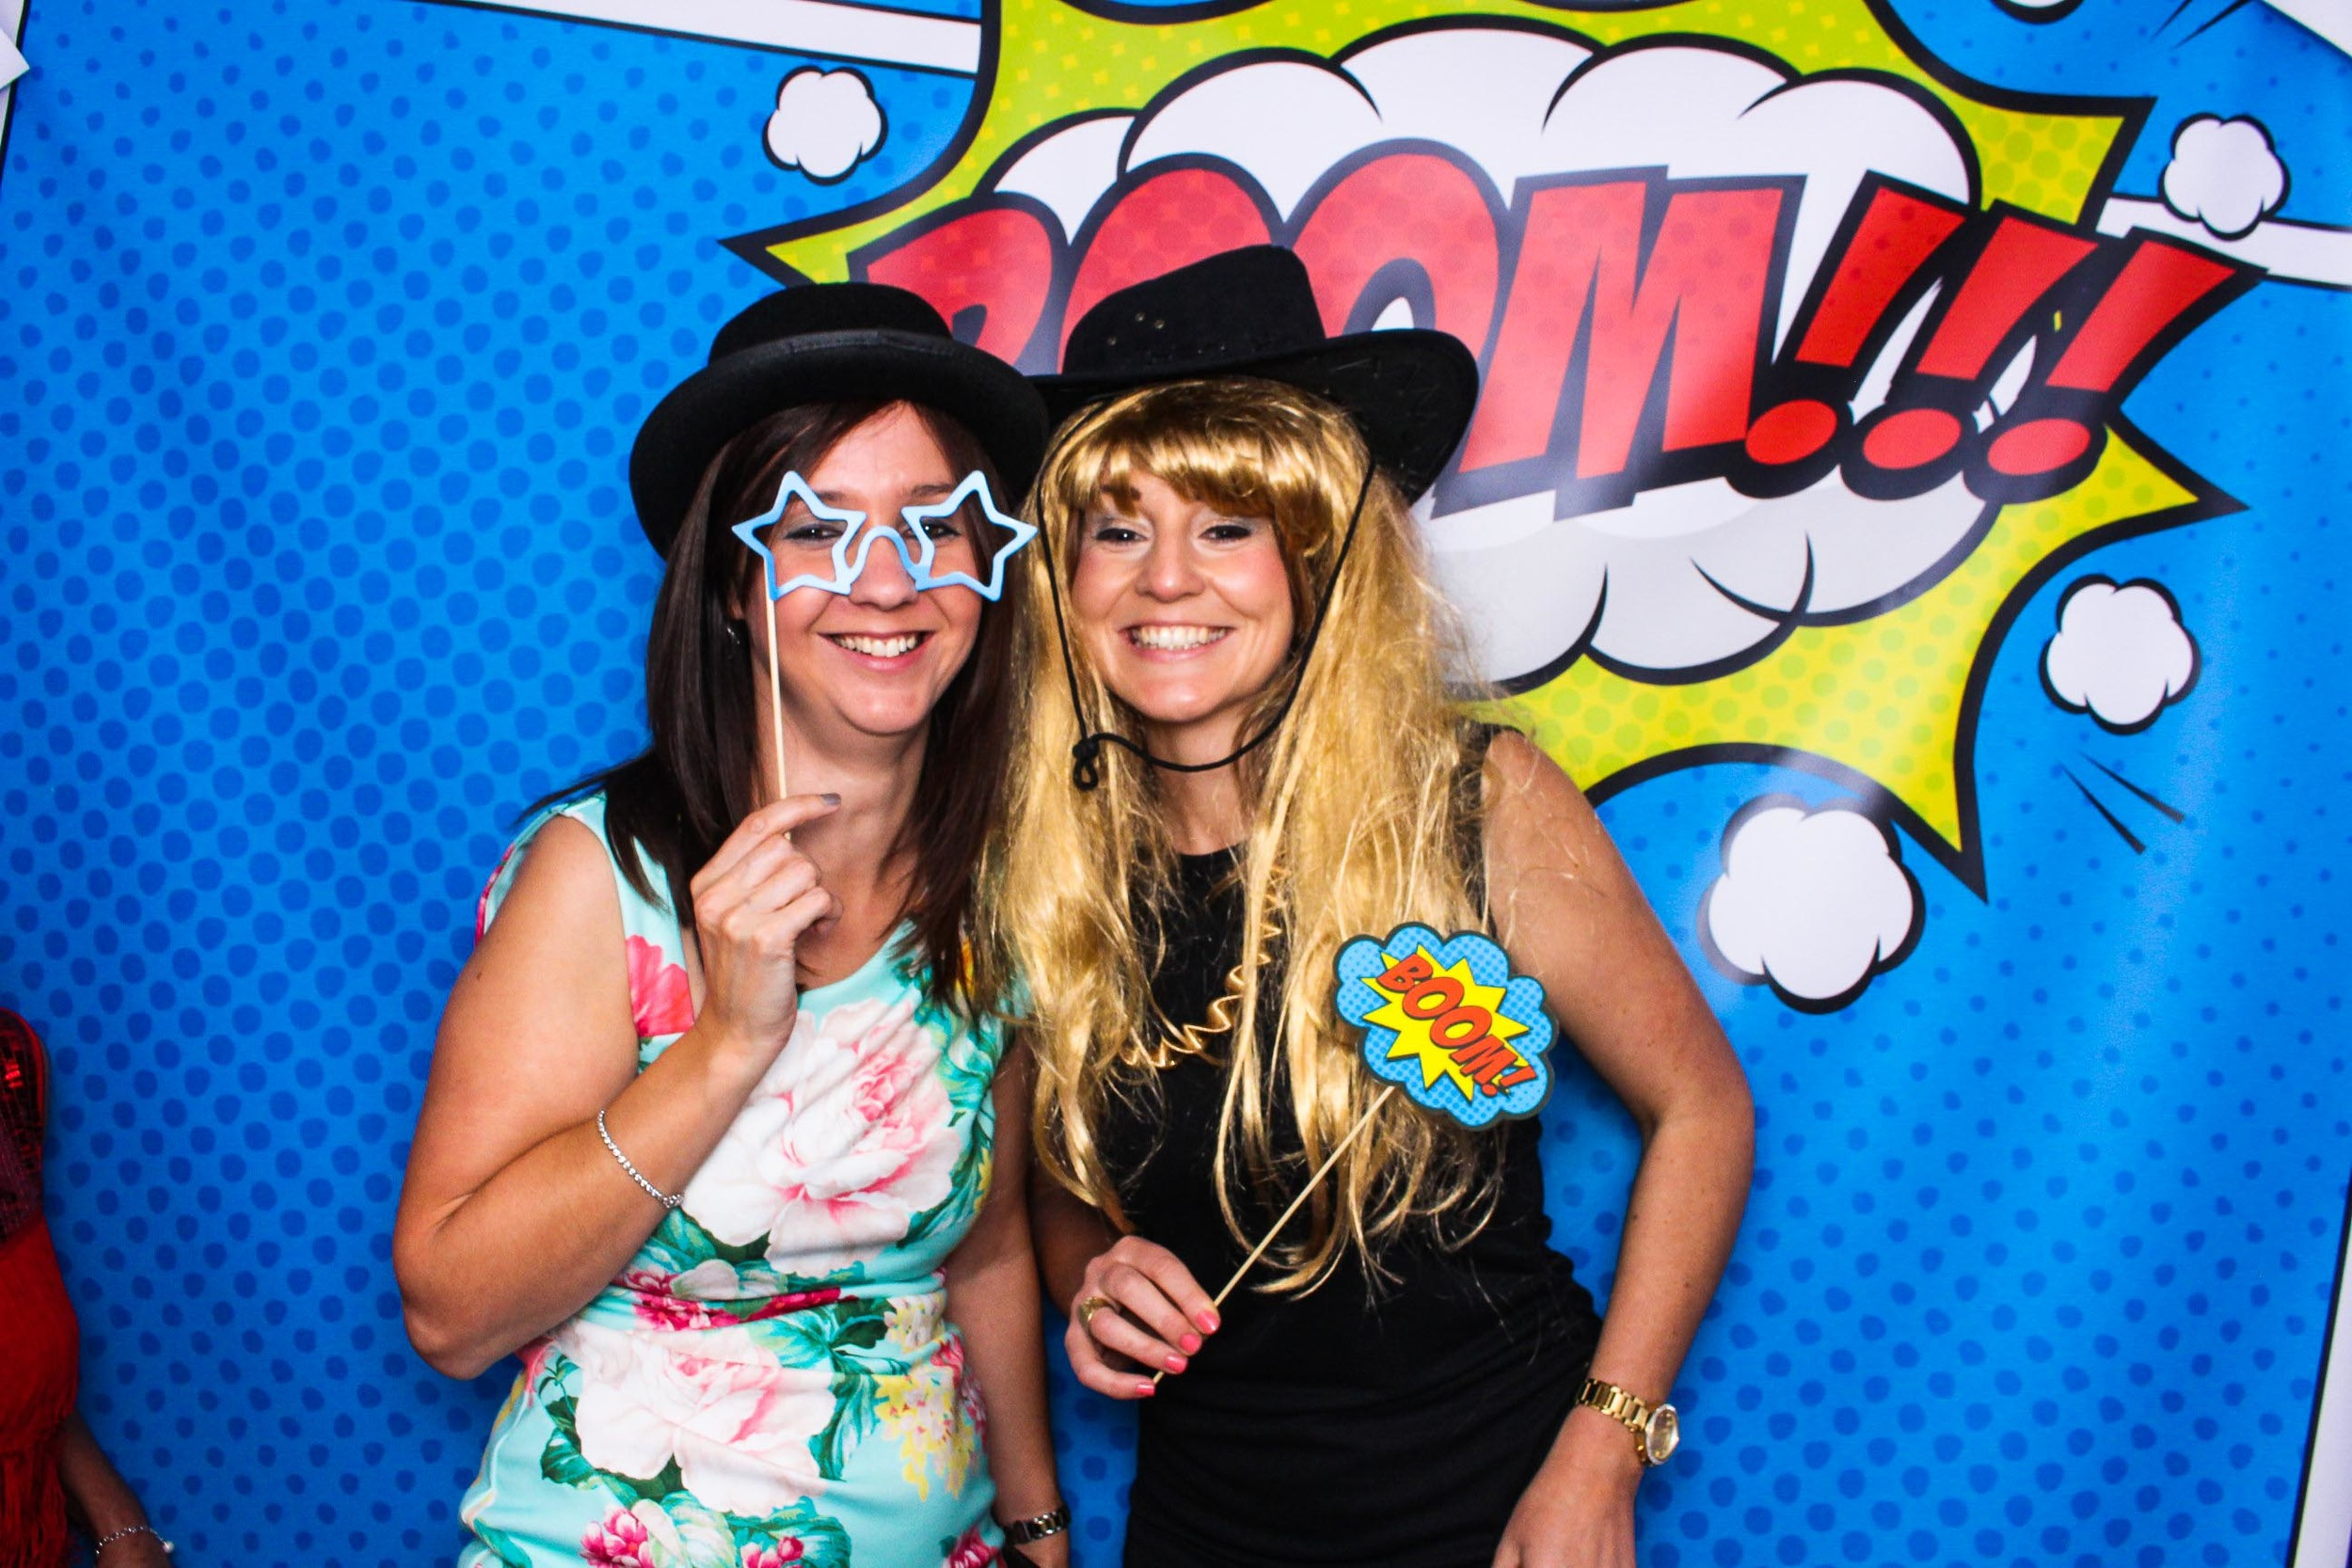 Fotoauto Photo Booth Hire - Shop Direct-178.jpg